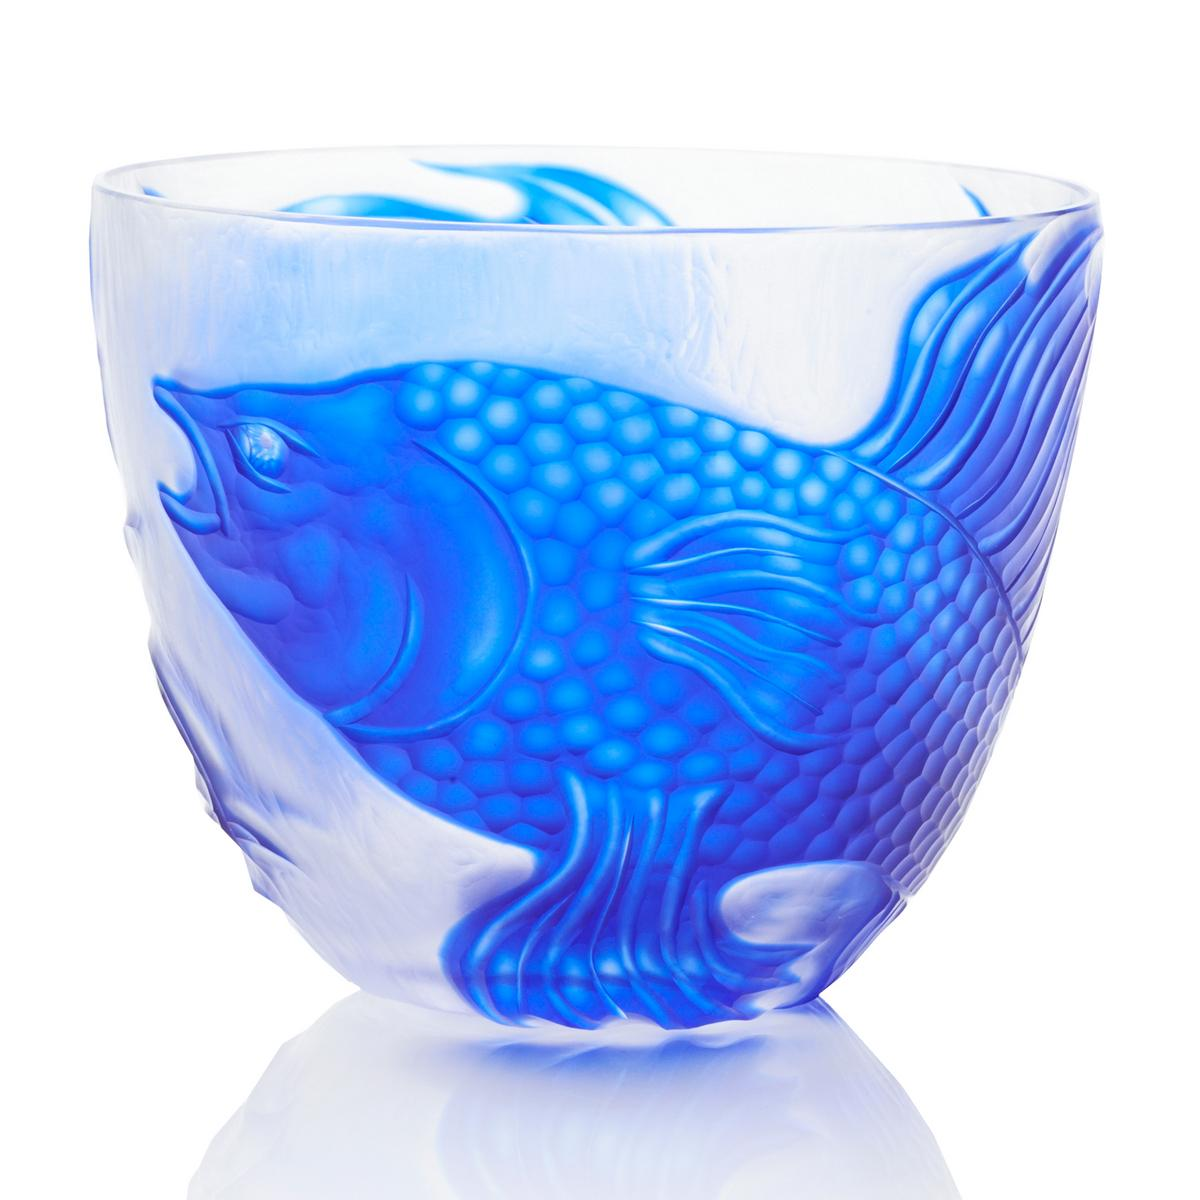 rotter glas siamese fighting fish bowl blue. Black Bedroom Furniture Sets. Home Design Ideas